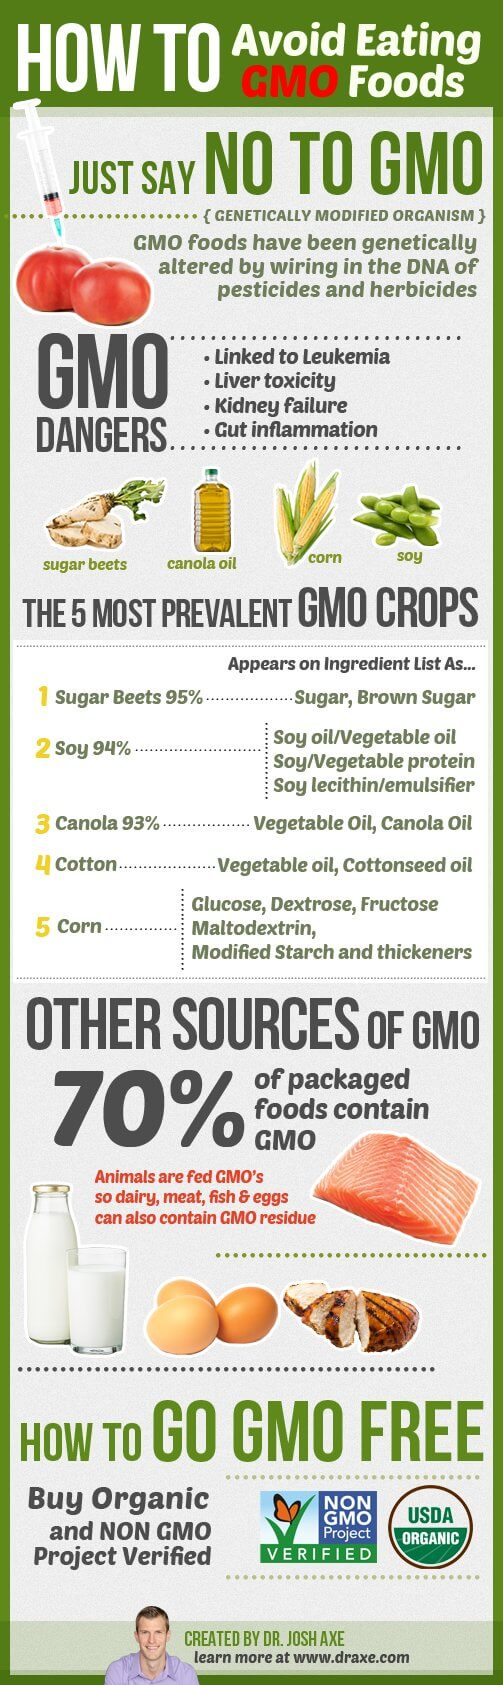 How to Avoid GMO Foods